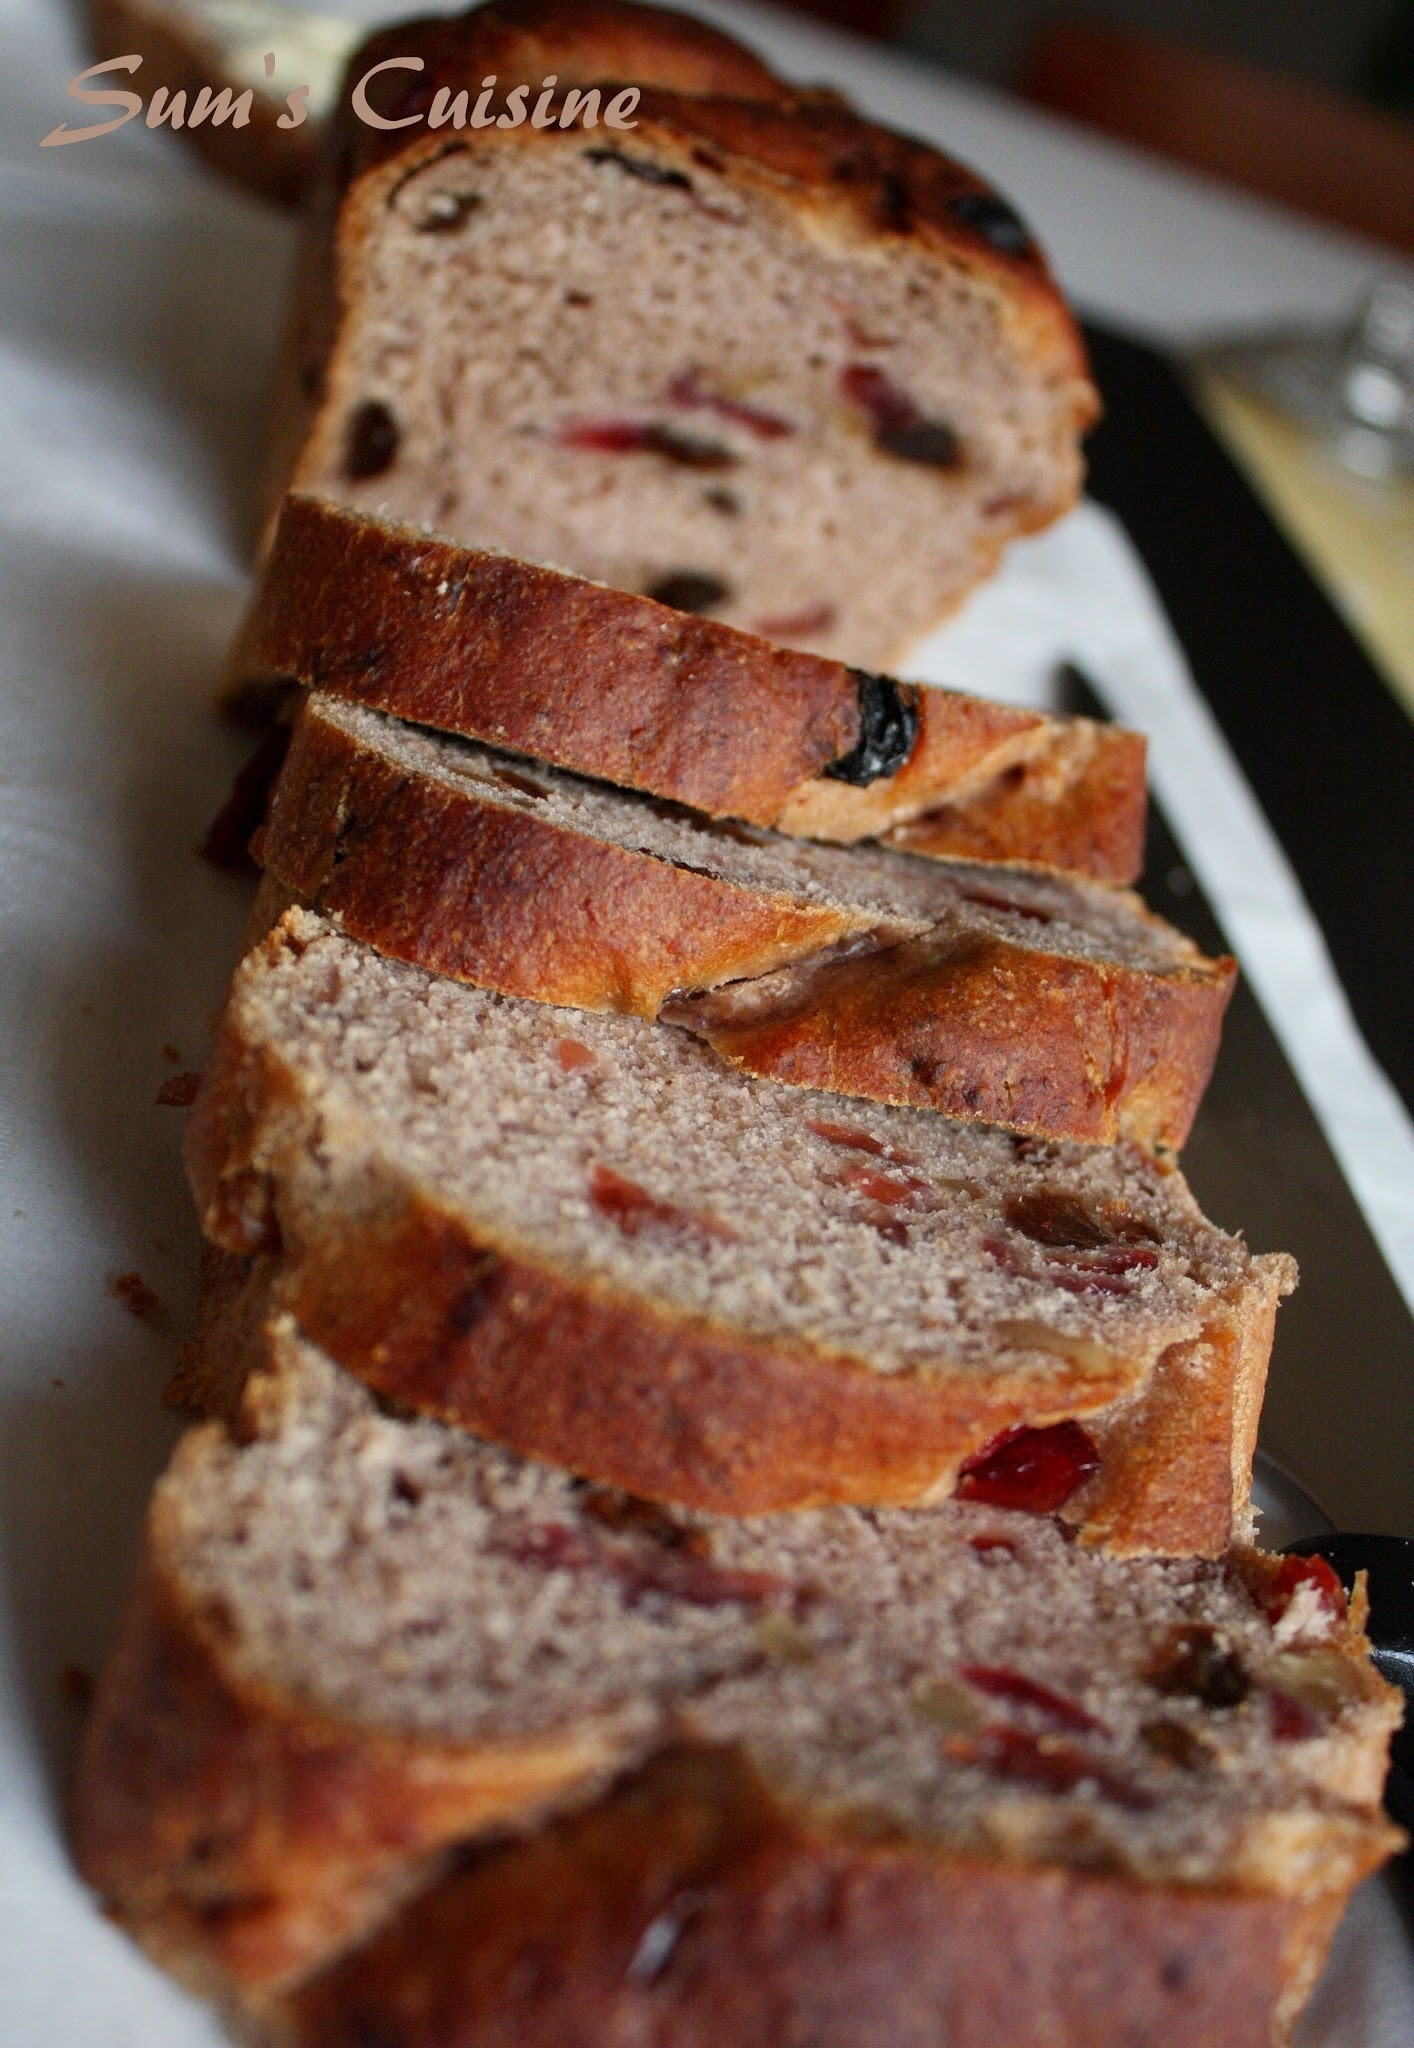 Cranberry Walnut Bread - From The Bread Bible